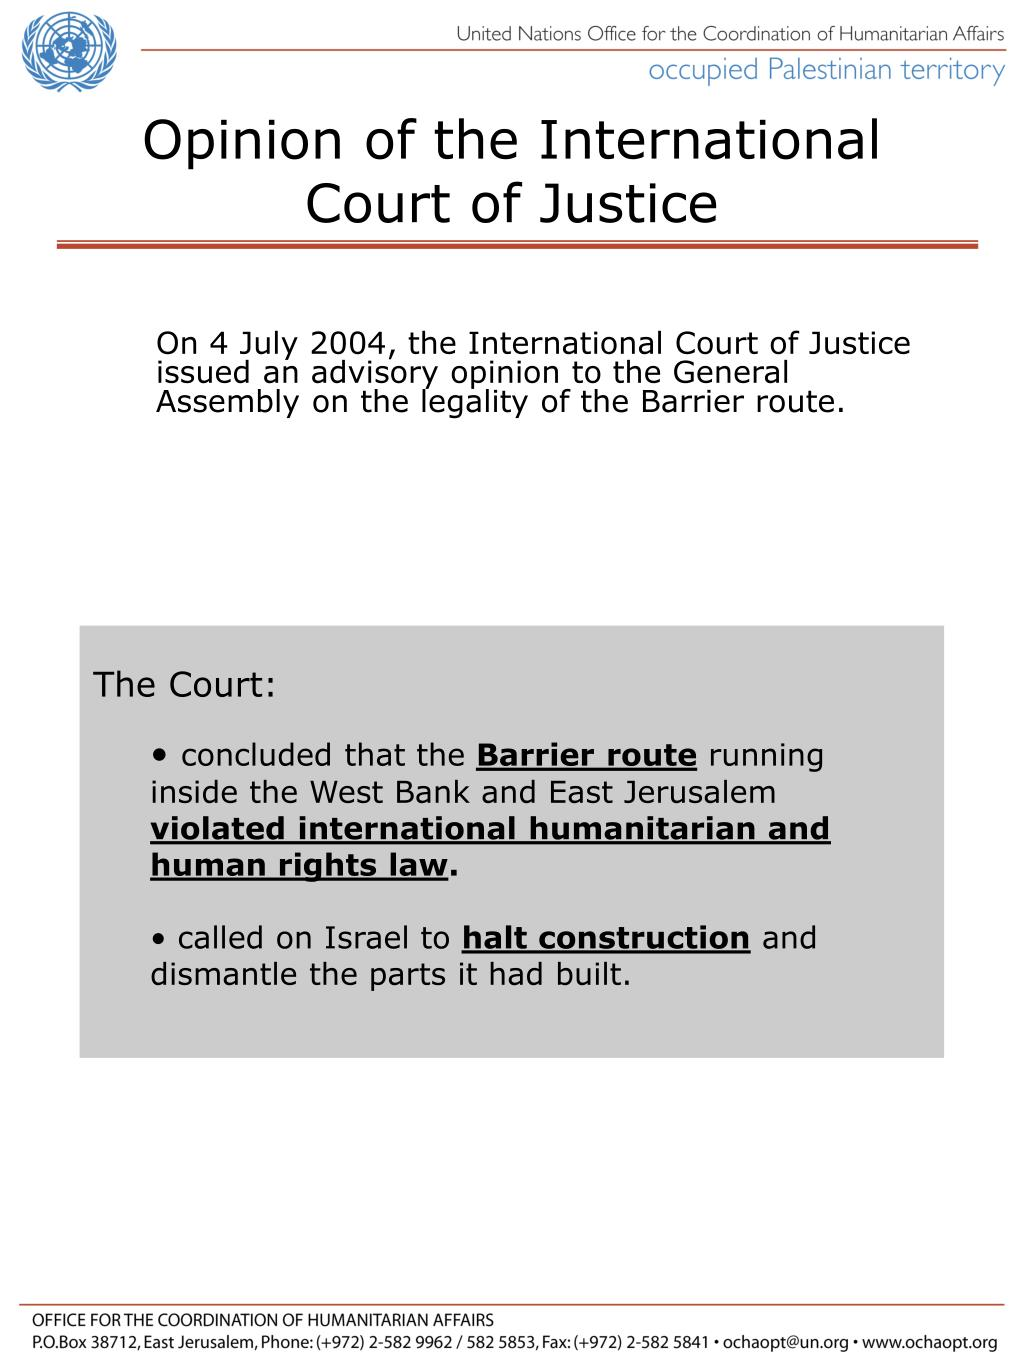 On 4 July 2004, the International Court of Justice issued an advisory opinion to the General Assembly on the legality of the Barrier route.